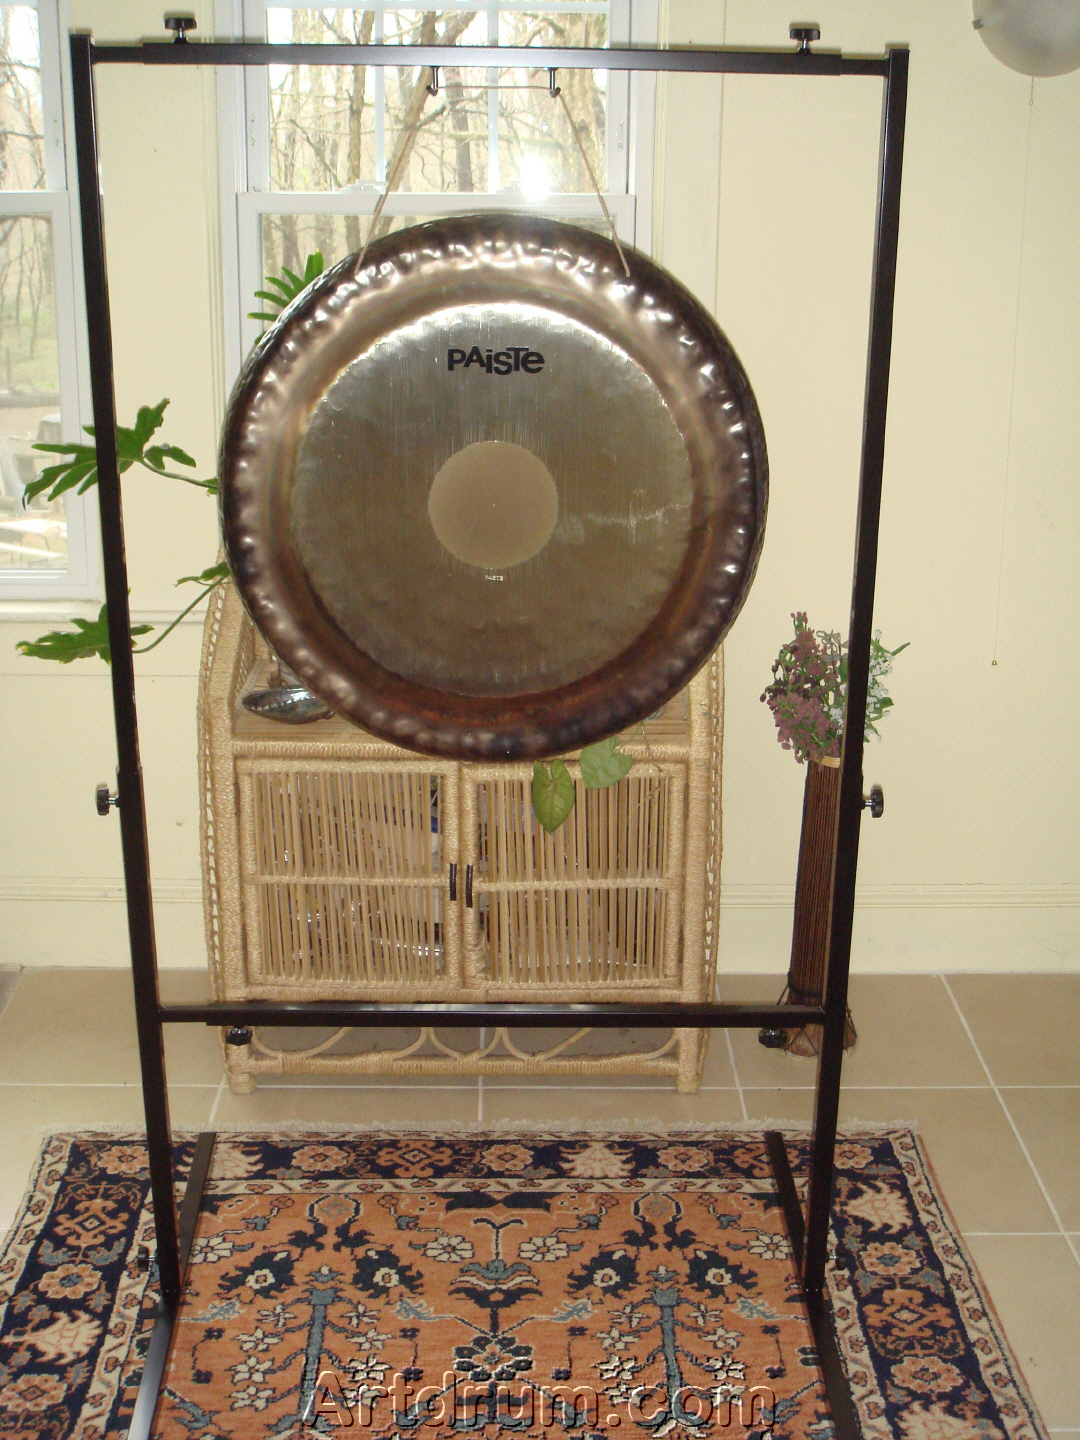 041ee58e86f0 Paiste Symphonic Gong · symphonic gong with gong stand